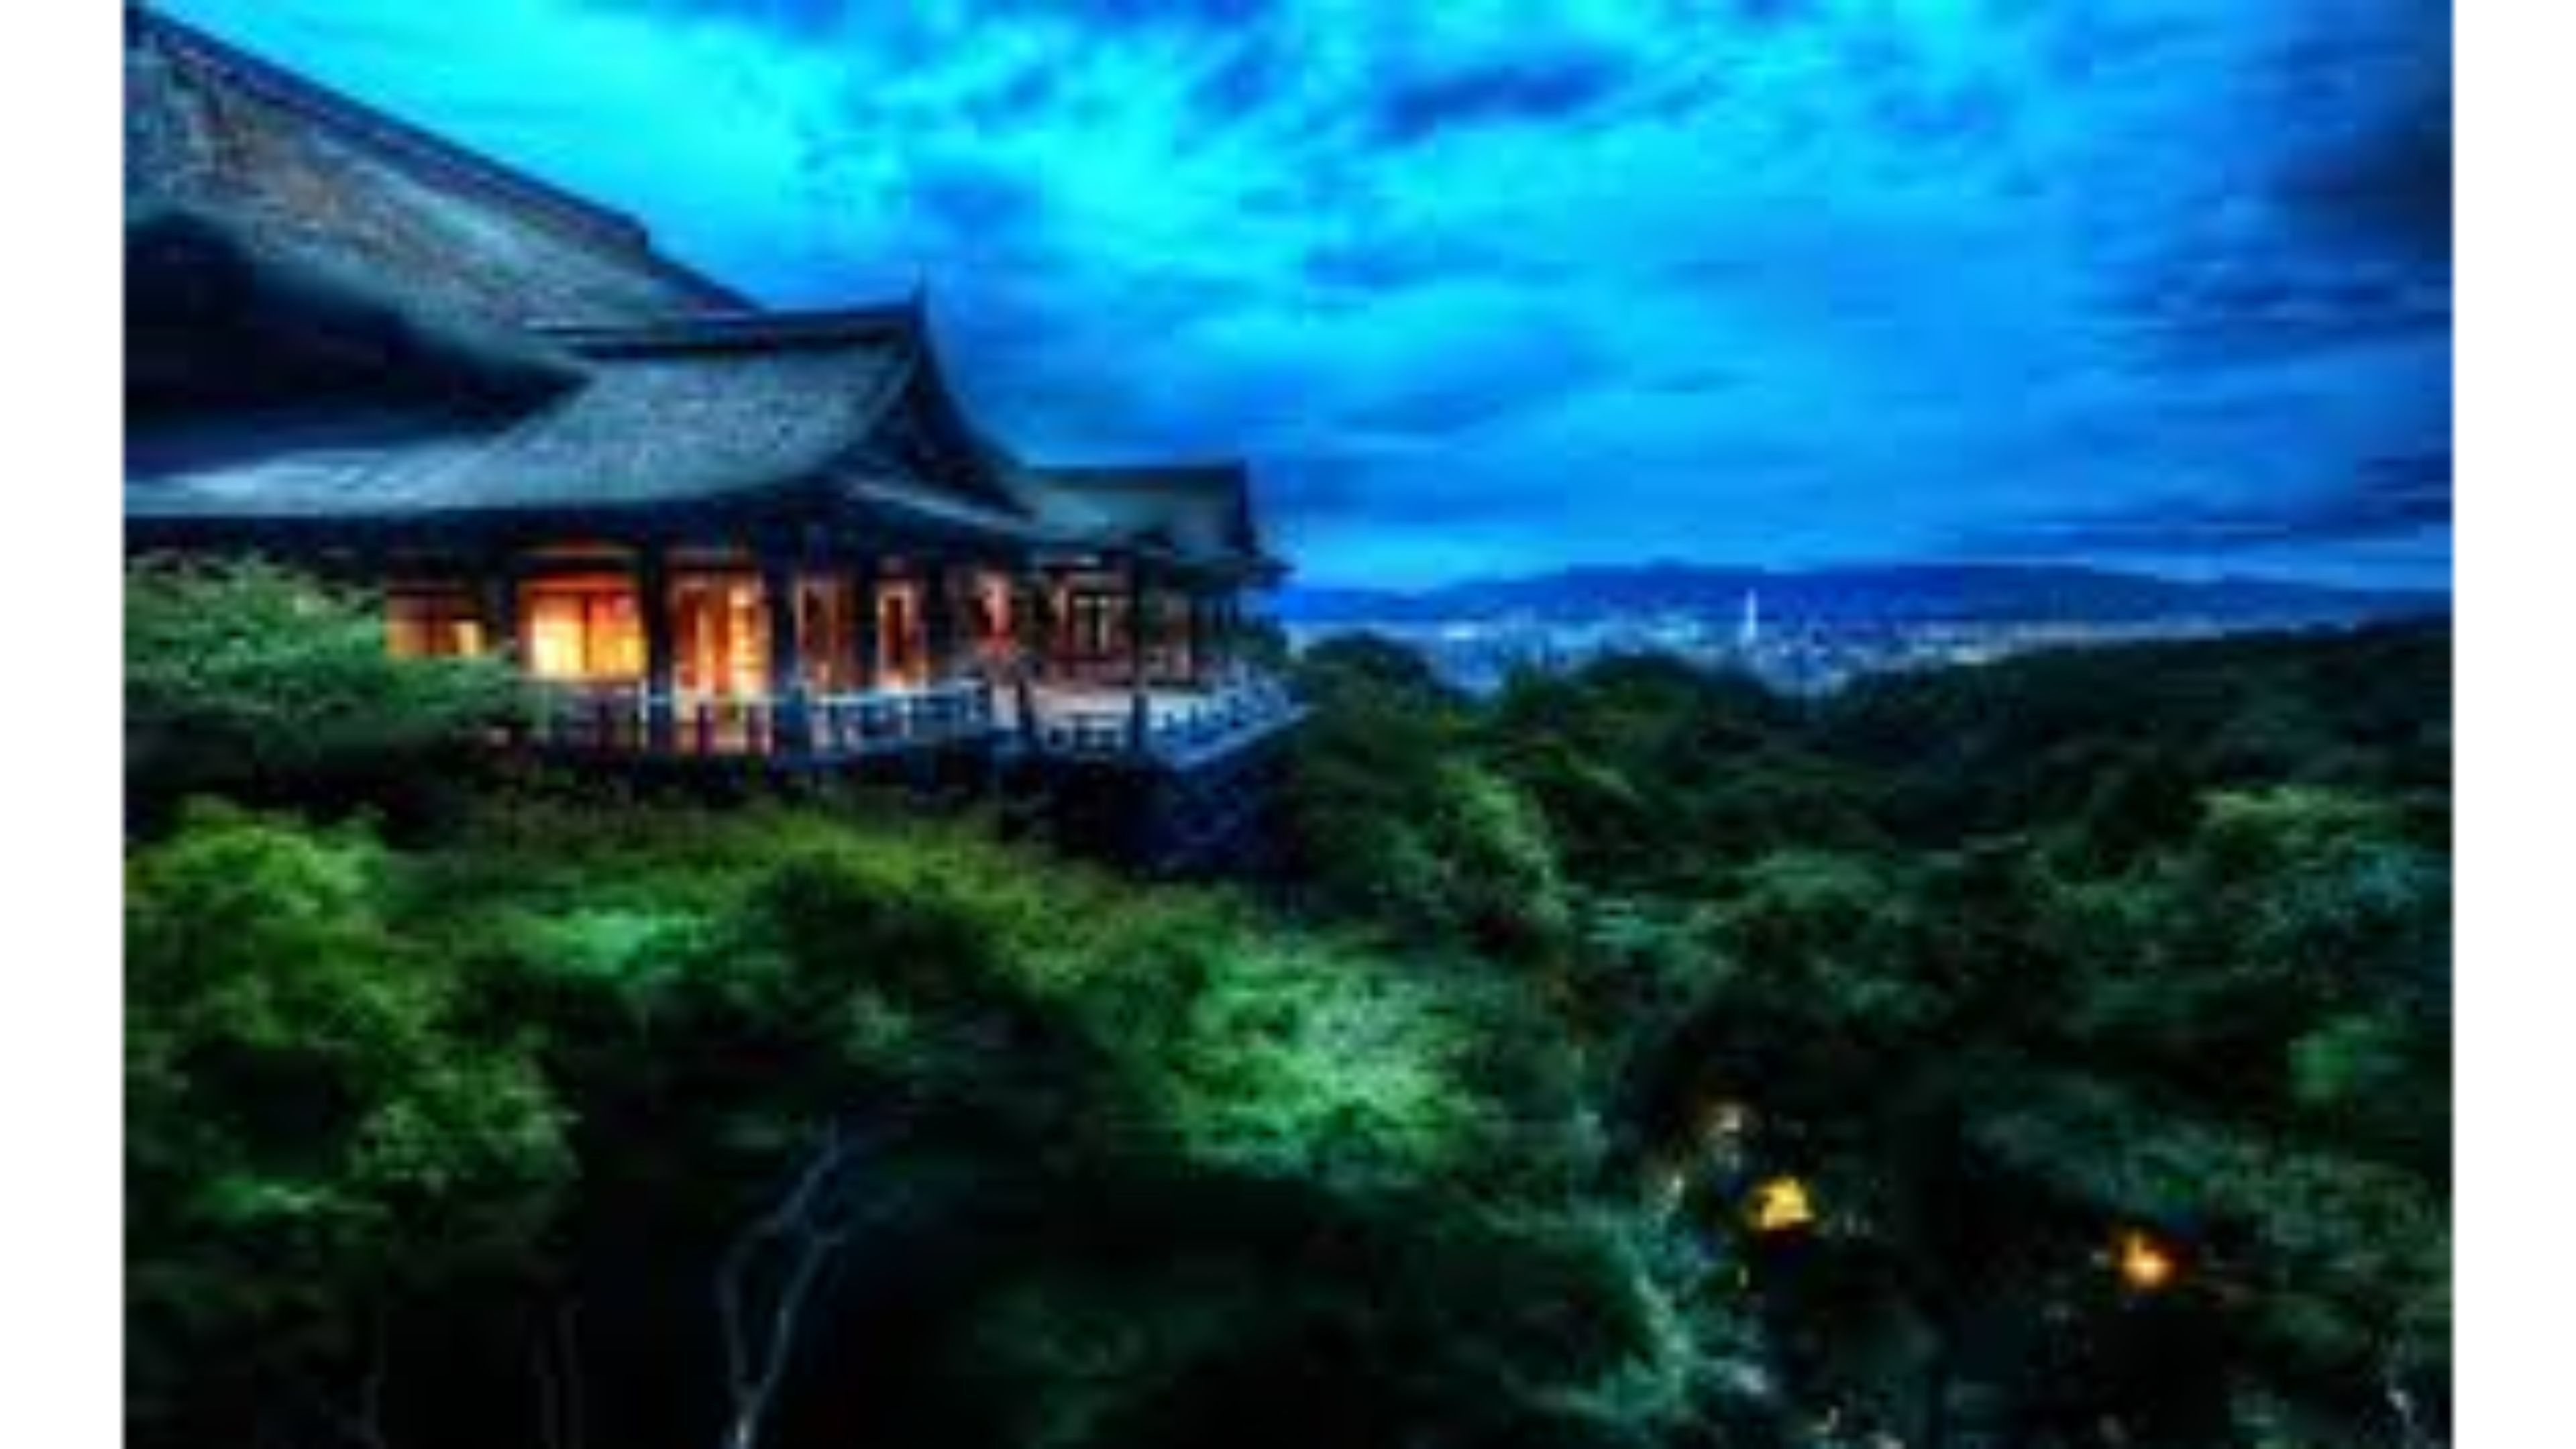 Res: 3840x2160, Trending 2016 Kyoto, Japan 4K Wallpaper